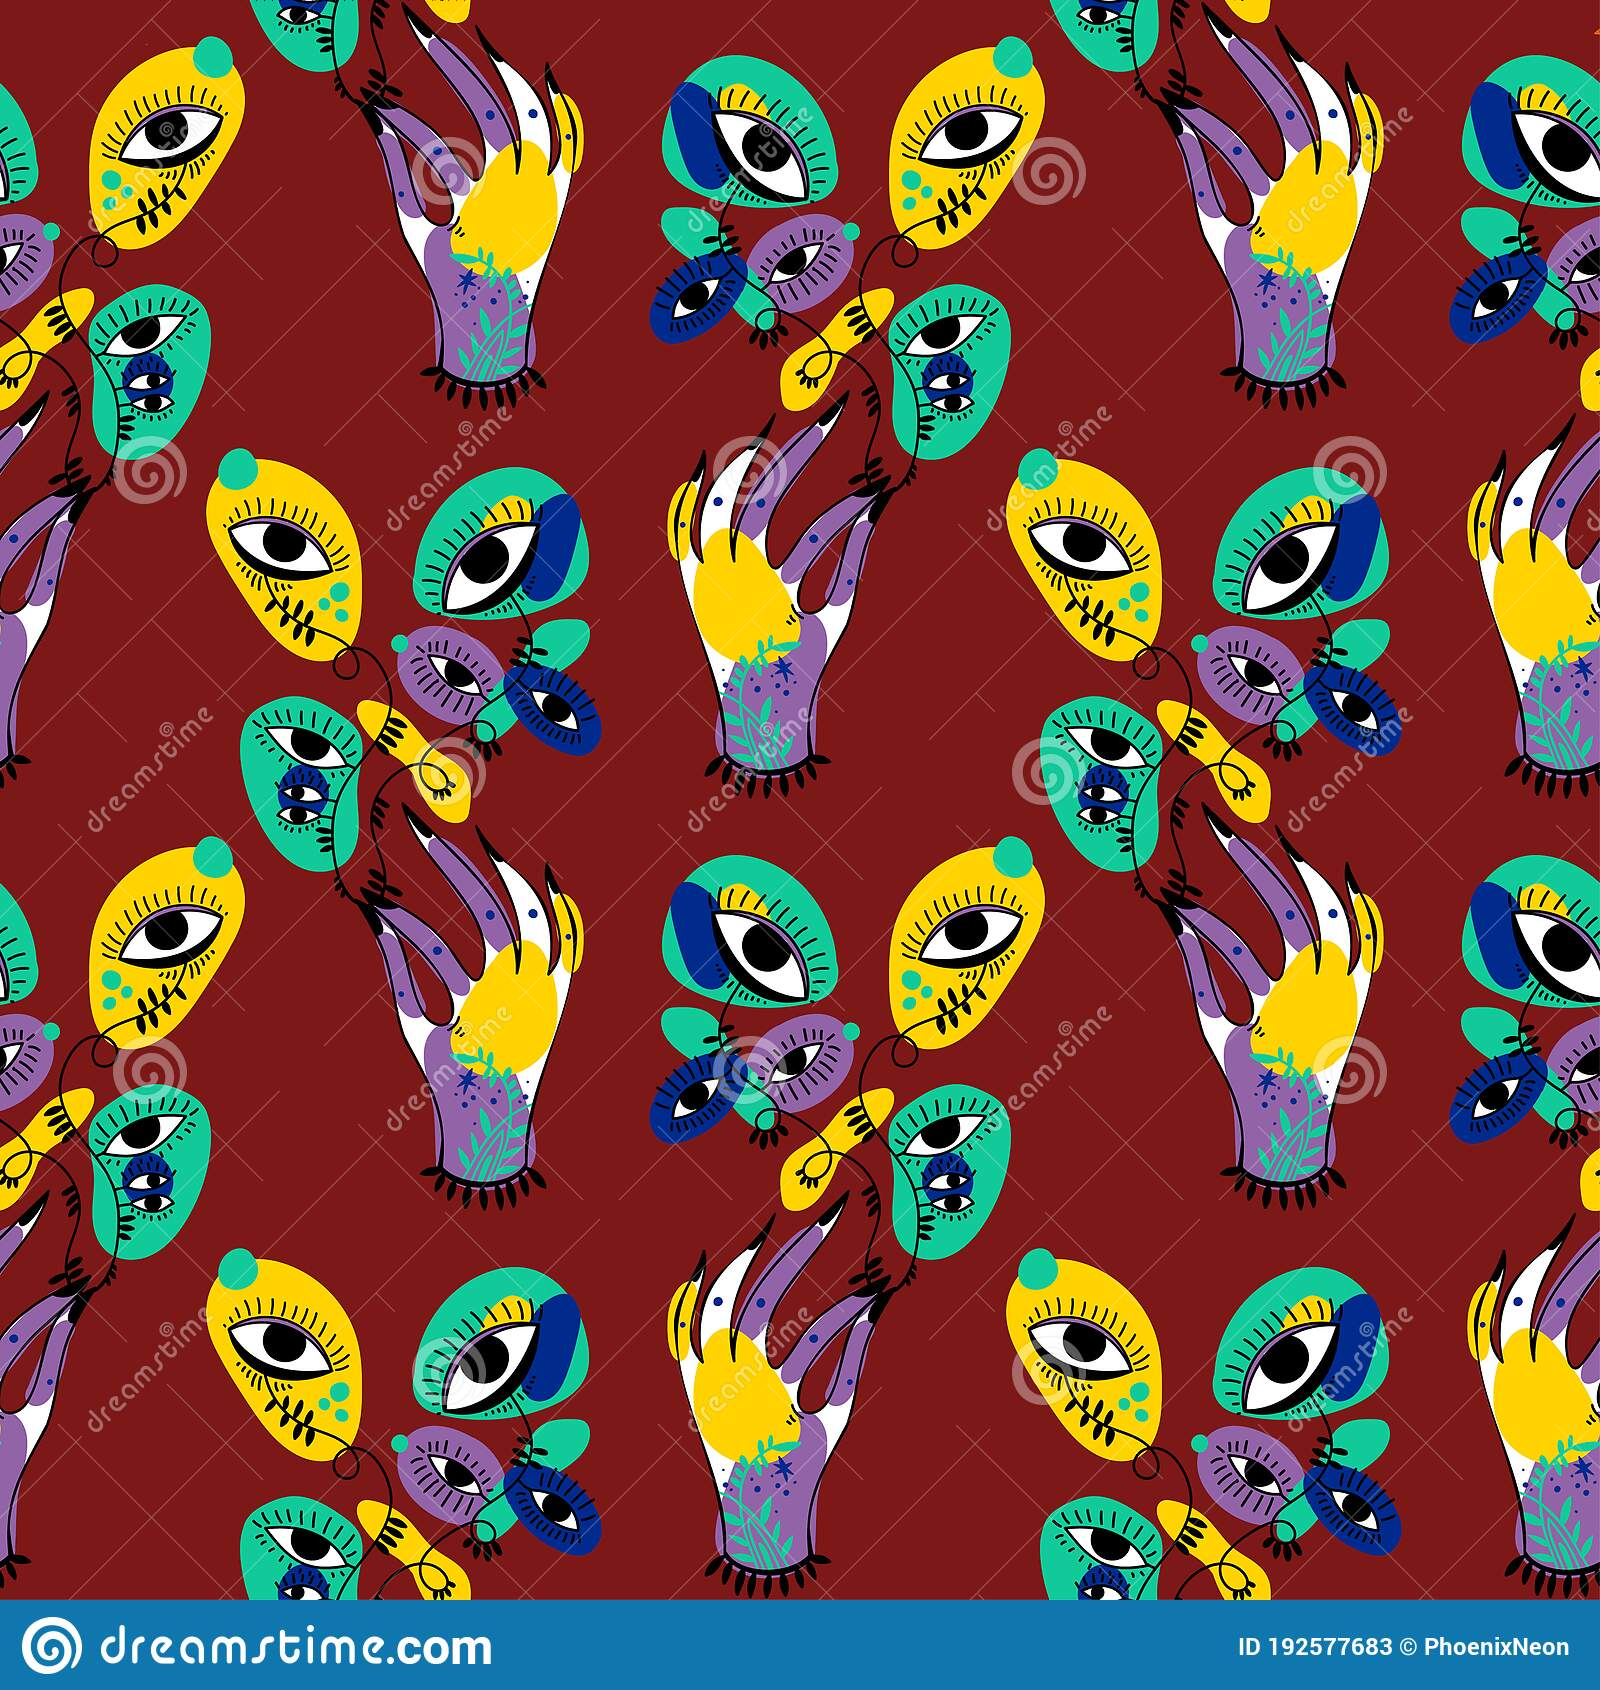 Hand Holding Psychedelic Plant Flower With Many Eyes Vivid Multicolor Seamless Pattern Stock Vector Illustration Of Alchemy Abstract 192577683